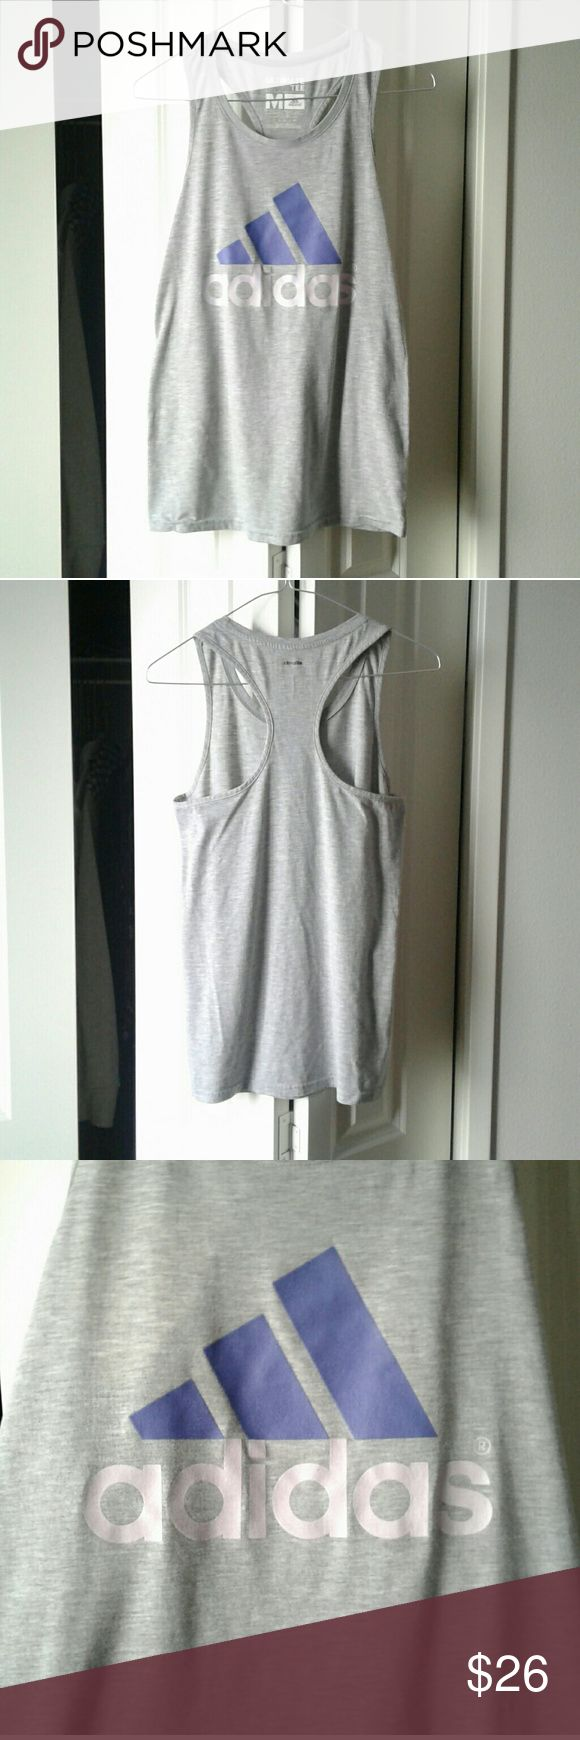 "⬇$26Adidas Logo Loose Tank Grey Adidas Logo Loose Tank  Style: Racerback Tank  Fit: Loose  Color: Gray  Straight Hem Design  Size M  85% Polyester, 15% Cotton  Large Adidas Logo and Lettering on Front  Front Colors: The ""adidas"" lettering is a light lavender purple. The signature adidas lines are a darker indigo purple.  Climalite Logo on Back in black lettering  Perfect for any workout, exercise, or just an easy lounge / athleisure top!  Pet-Free, Smoke-Free Home  Clean and in Excellent…"